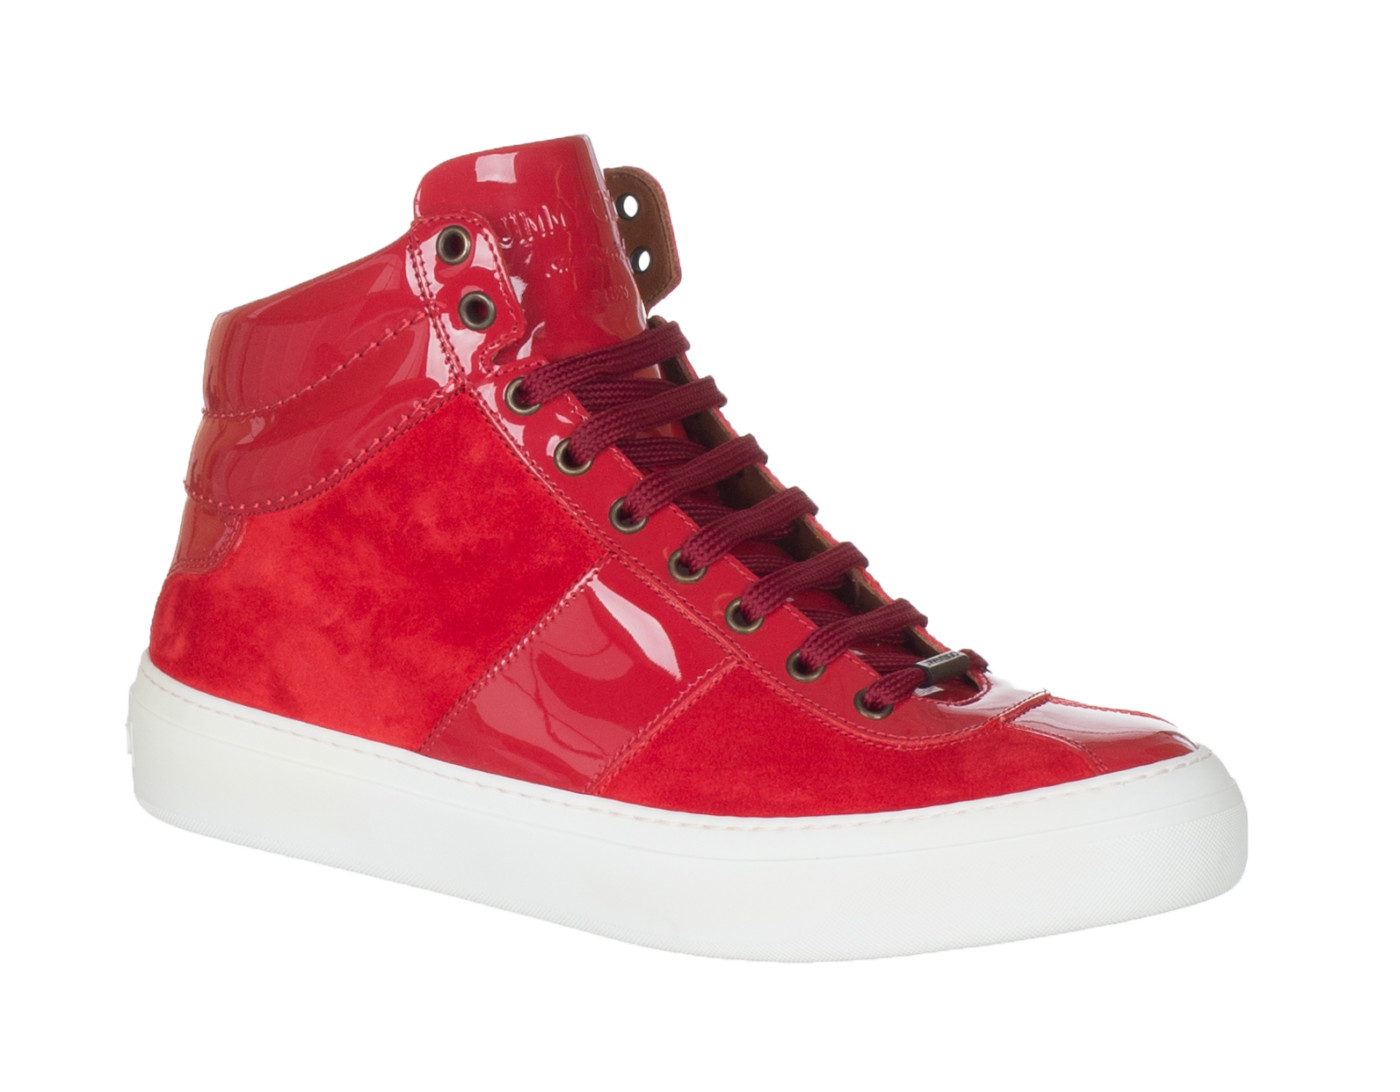 f36dd81aff7 Jimmy Choo Men s Red Suede  Belgravia  High Top Sneakers Shoes